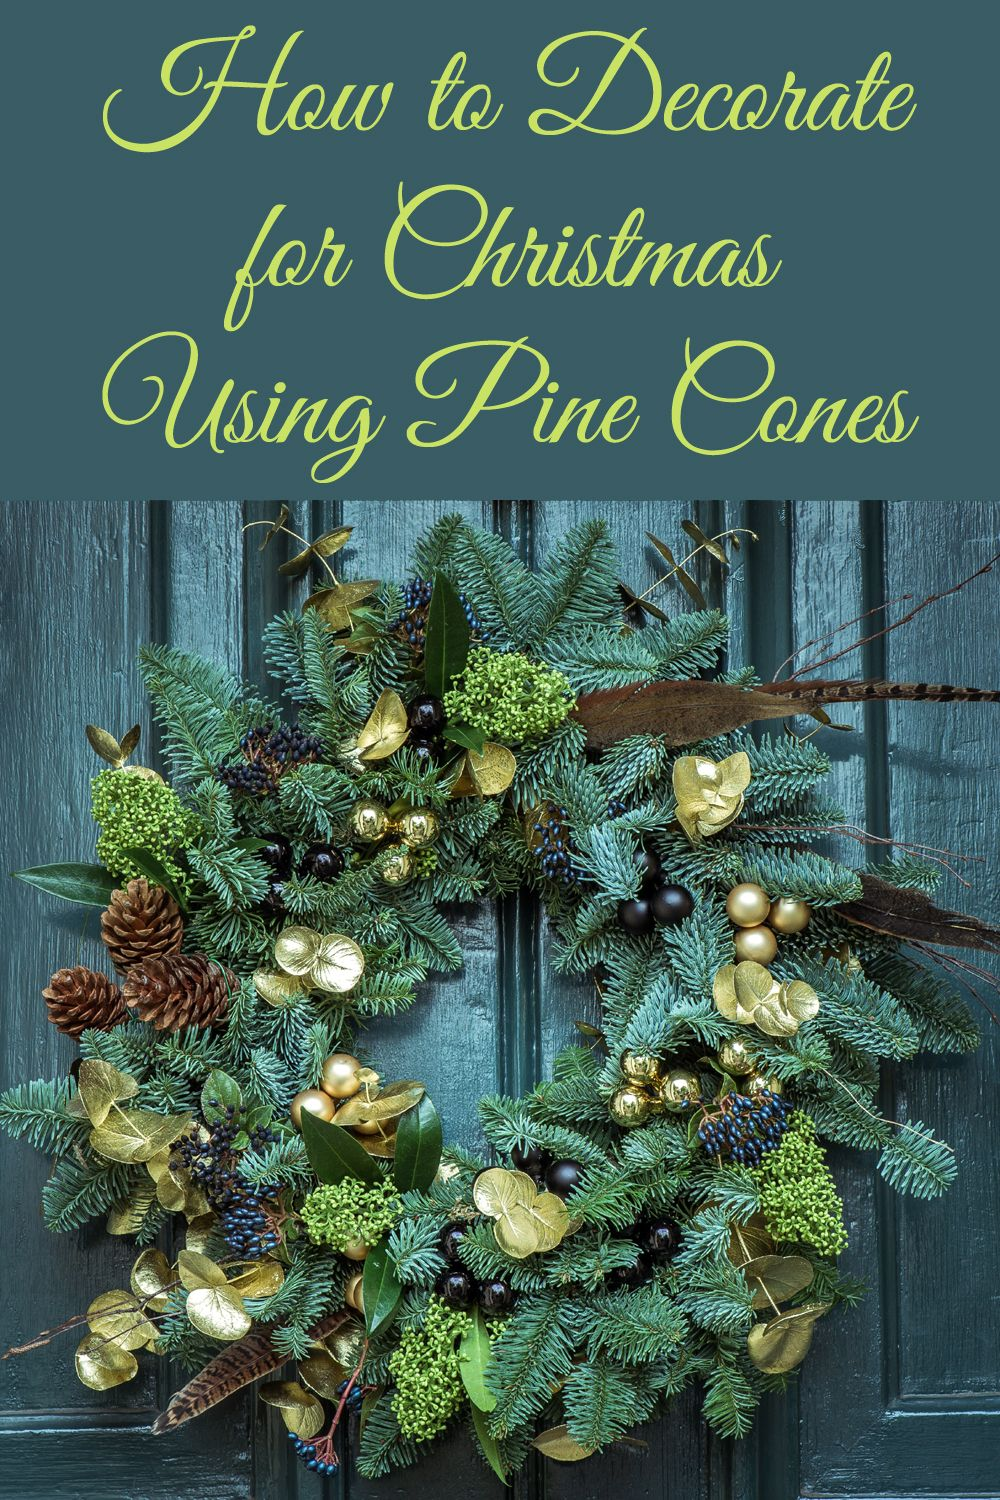 Ideas for how to decorate for Christmas using pine cones. #christmasdecoratingideas #christmasdecor #cheapchristmasdecor #naturalchristmasdecor